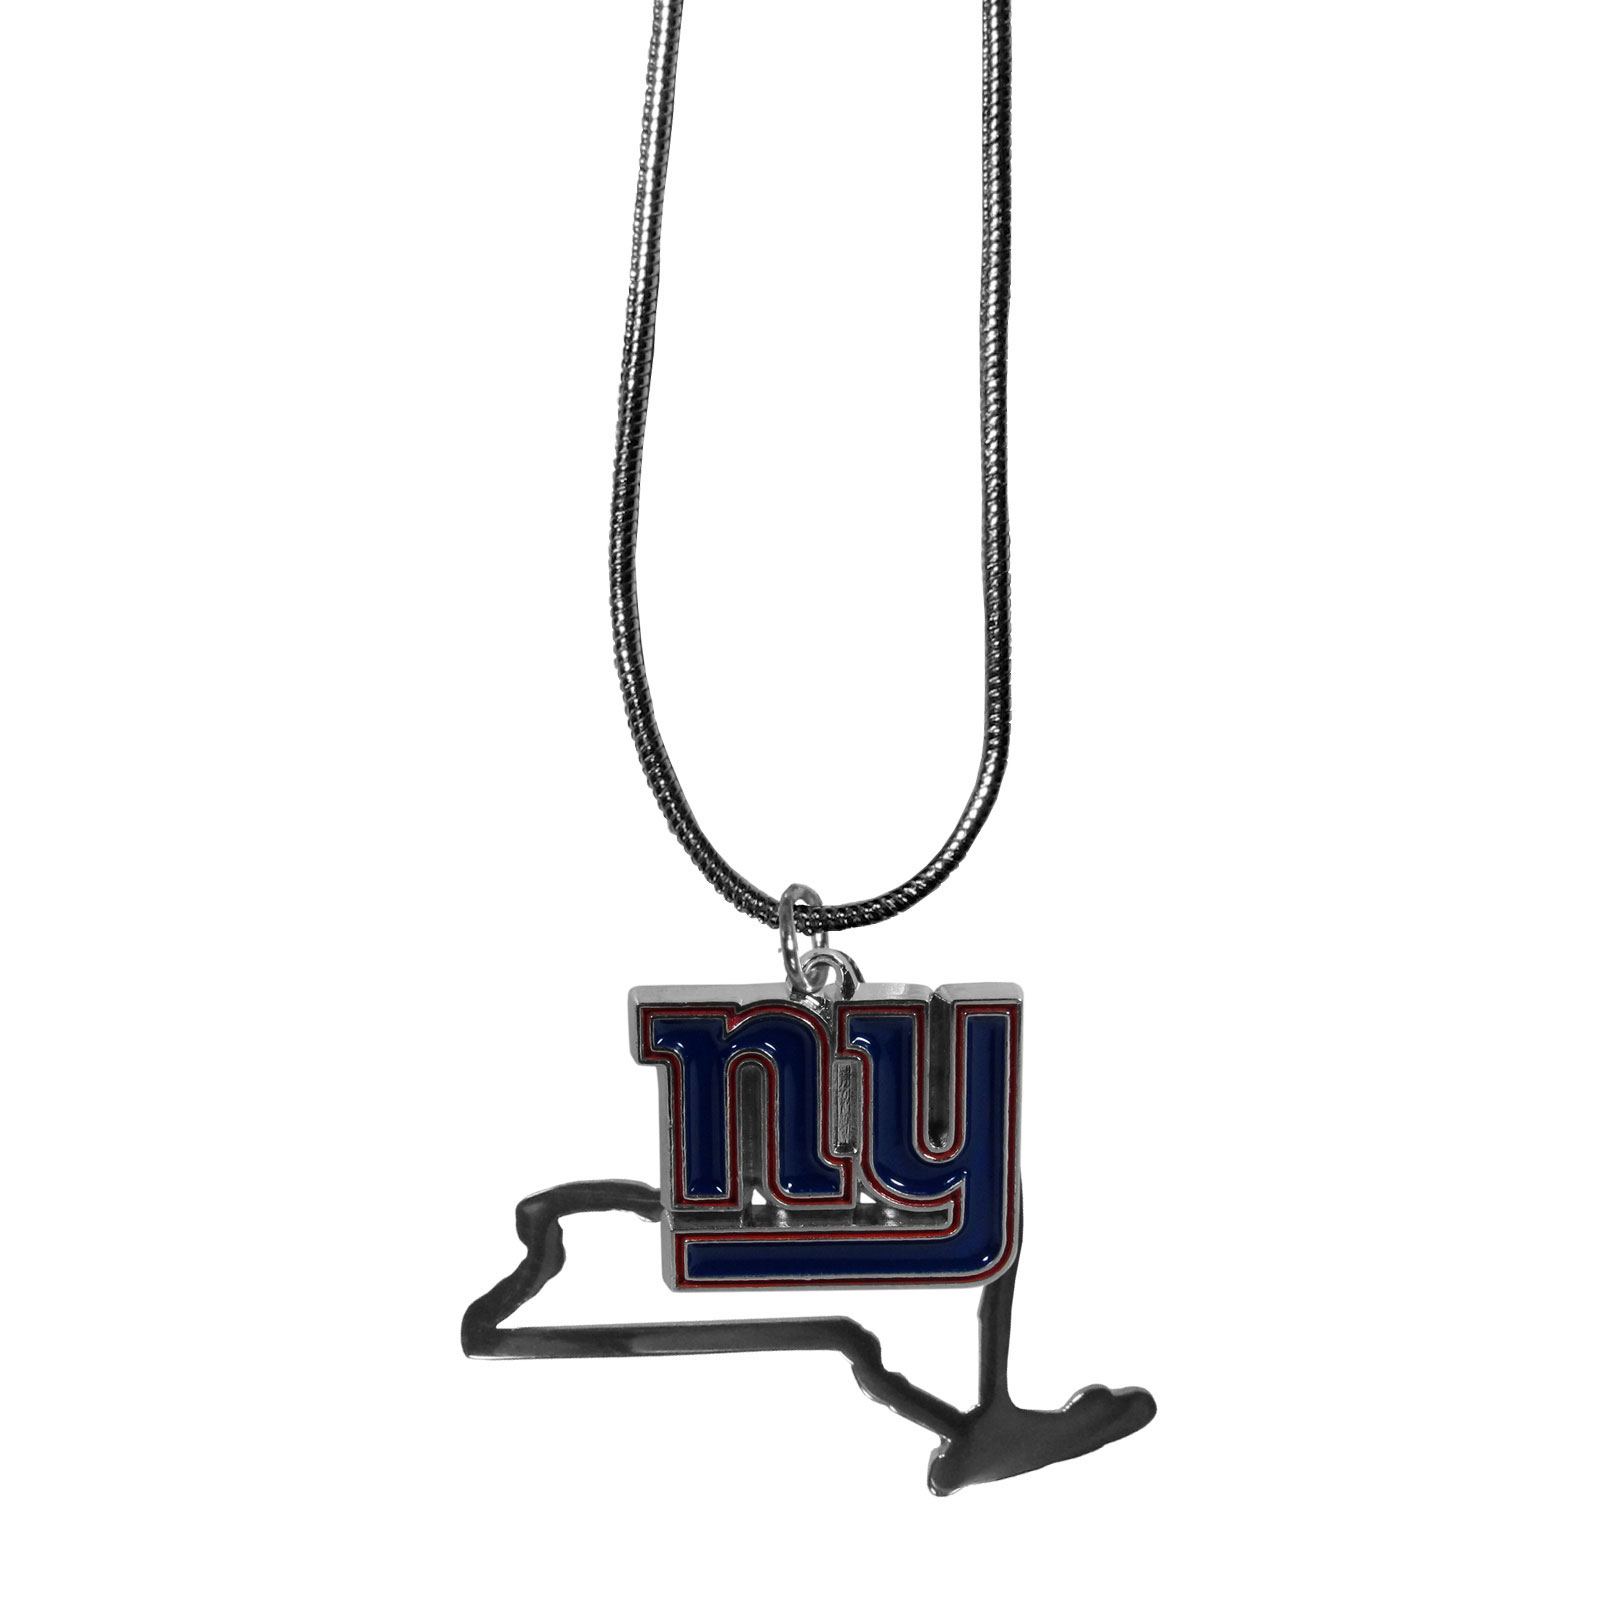 New York Giants State Charm Necklace - Get in on the trend! State themes are a trend that just keeps getting more popular and these necklaces take the state style and give it a sporty twist with a New York Giants added to the state outline charm. The come on a snake chain that is 22 inches long.